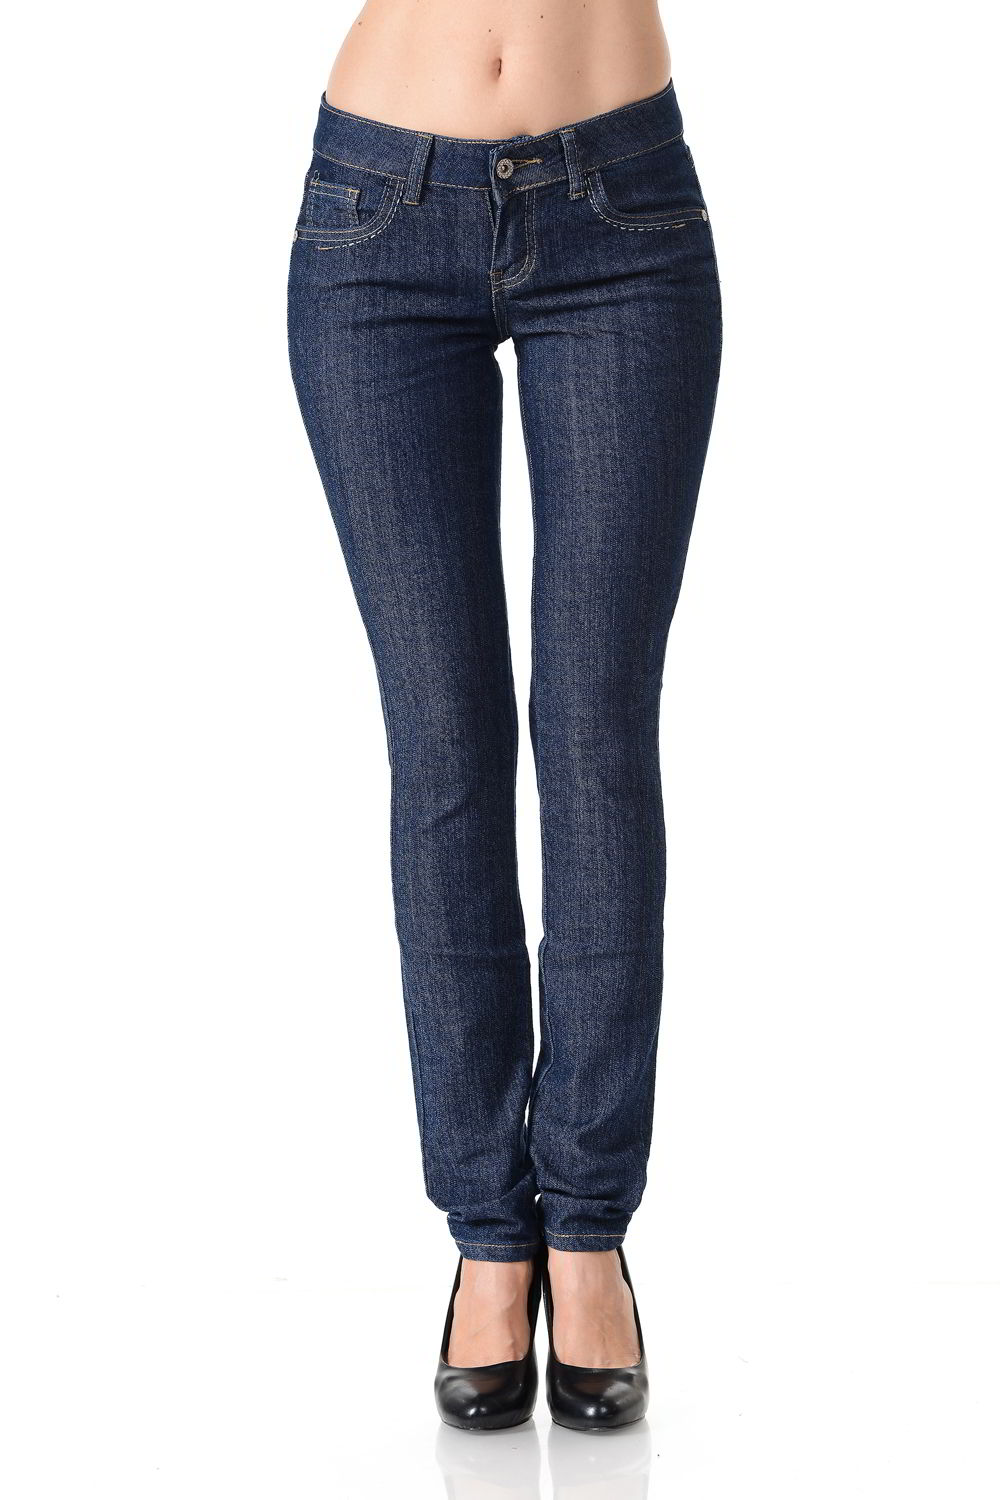 Pasion Women's Jeans - Push Up -  Style G568